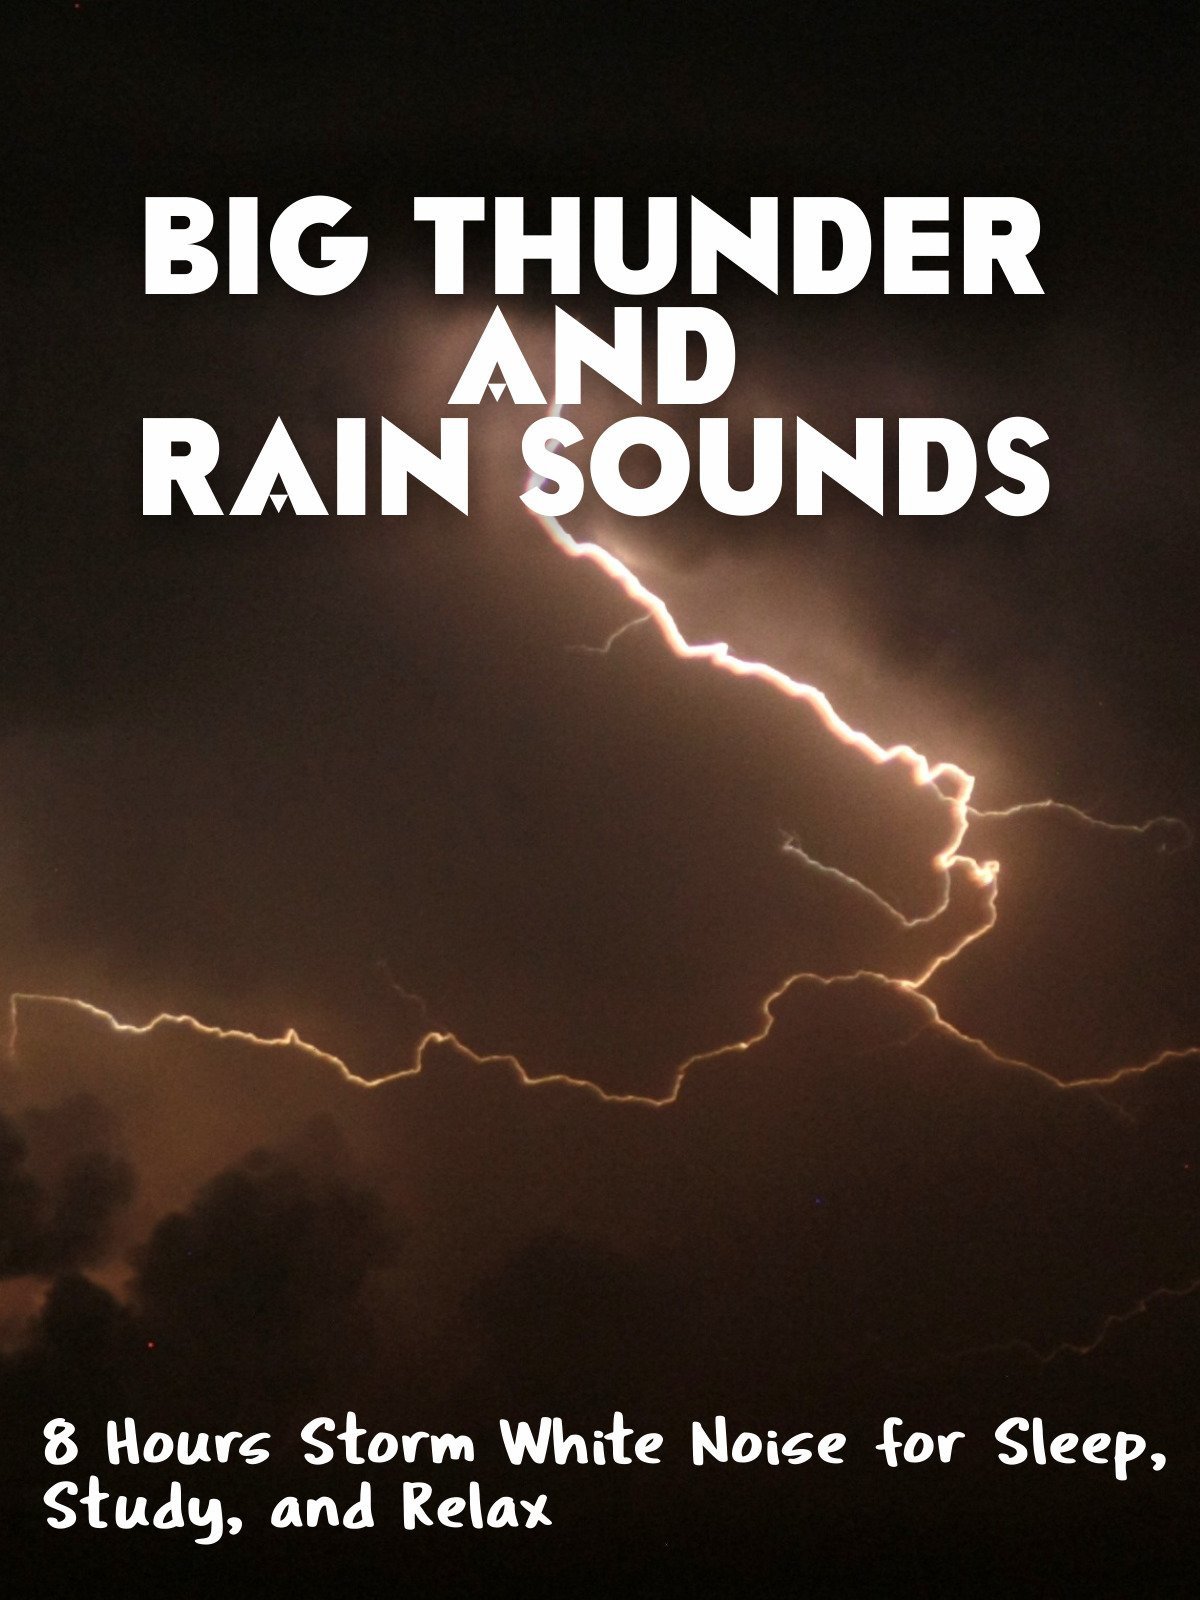 Big Thunder and Rain Sounds